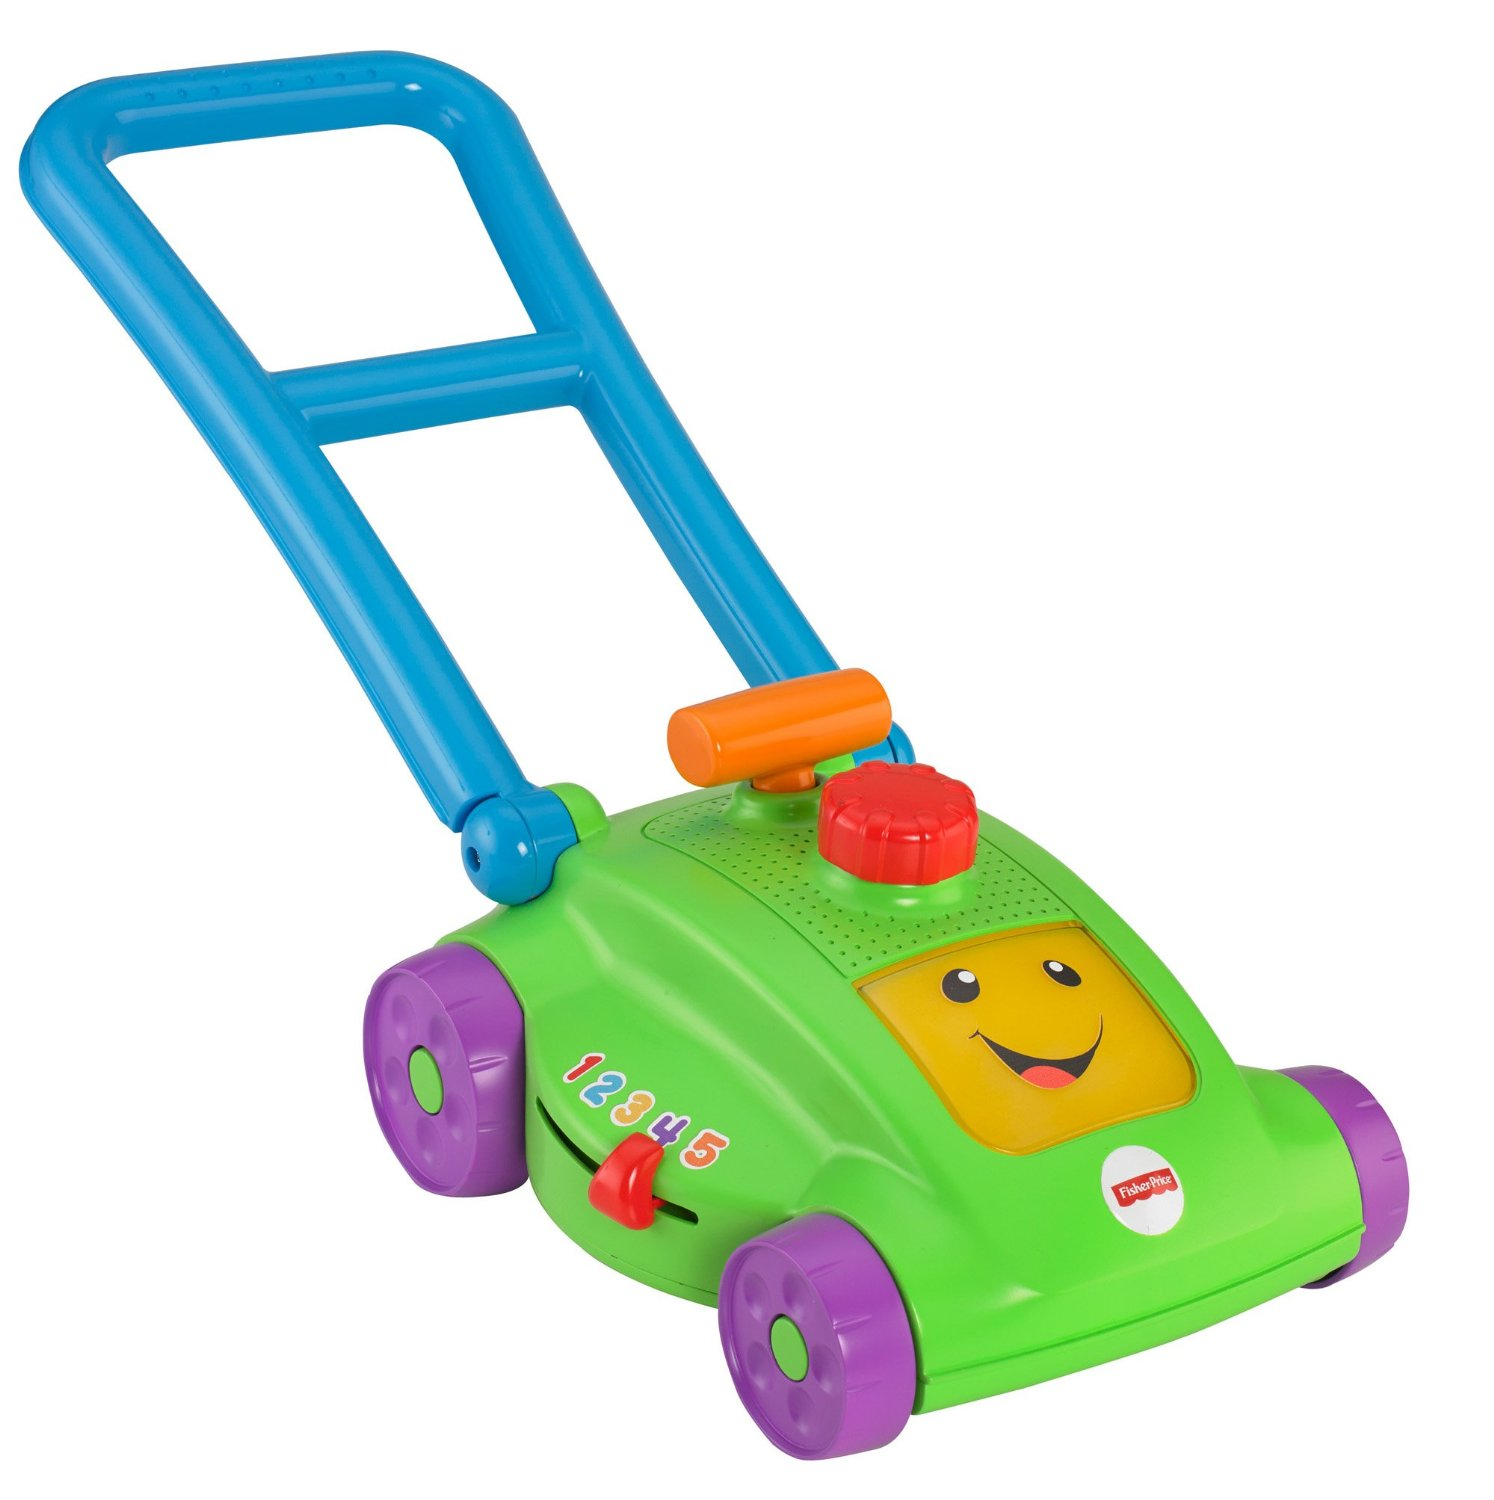 71NqsQEFDTL. SL1500  Target: Fisher Price Laugh and Learn Smart Stages Mower Only $9.35